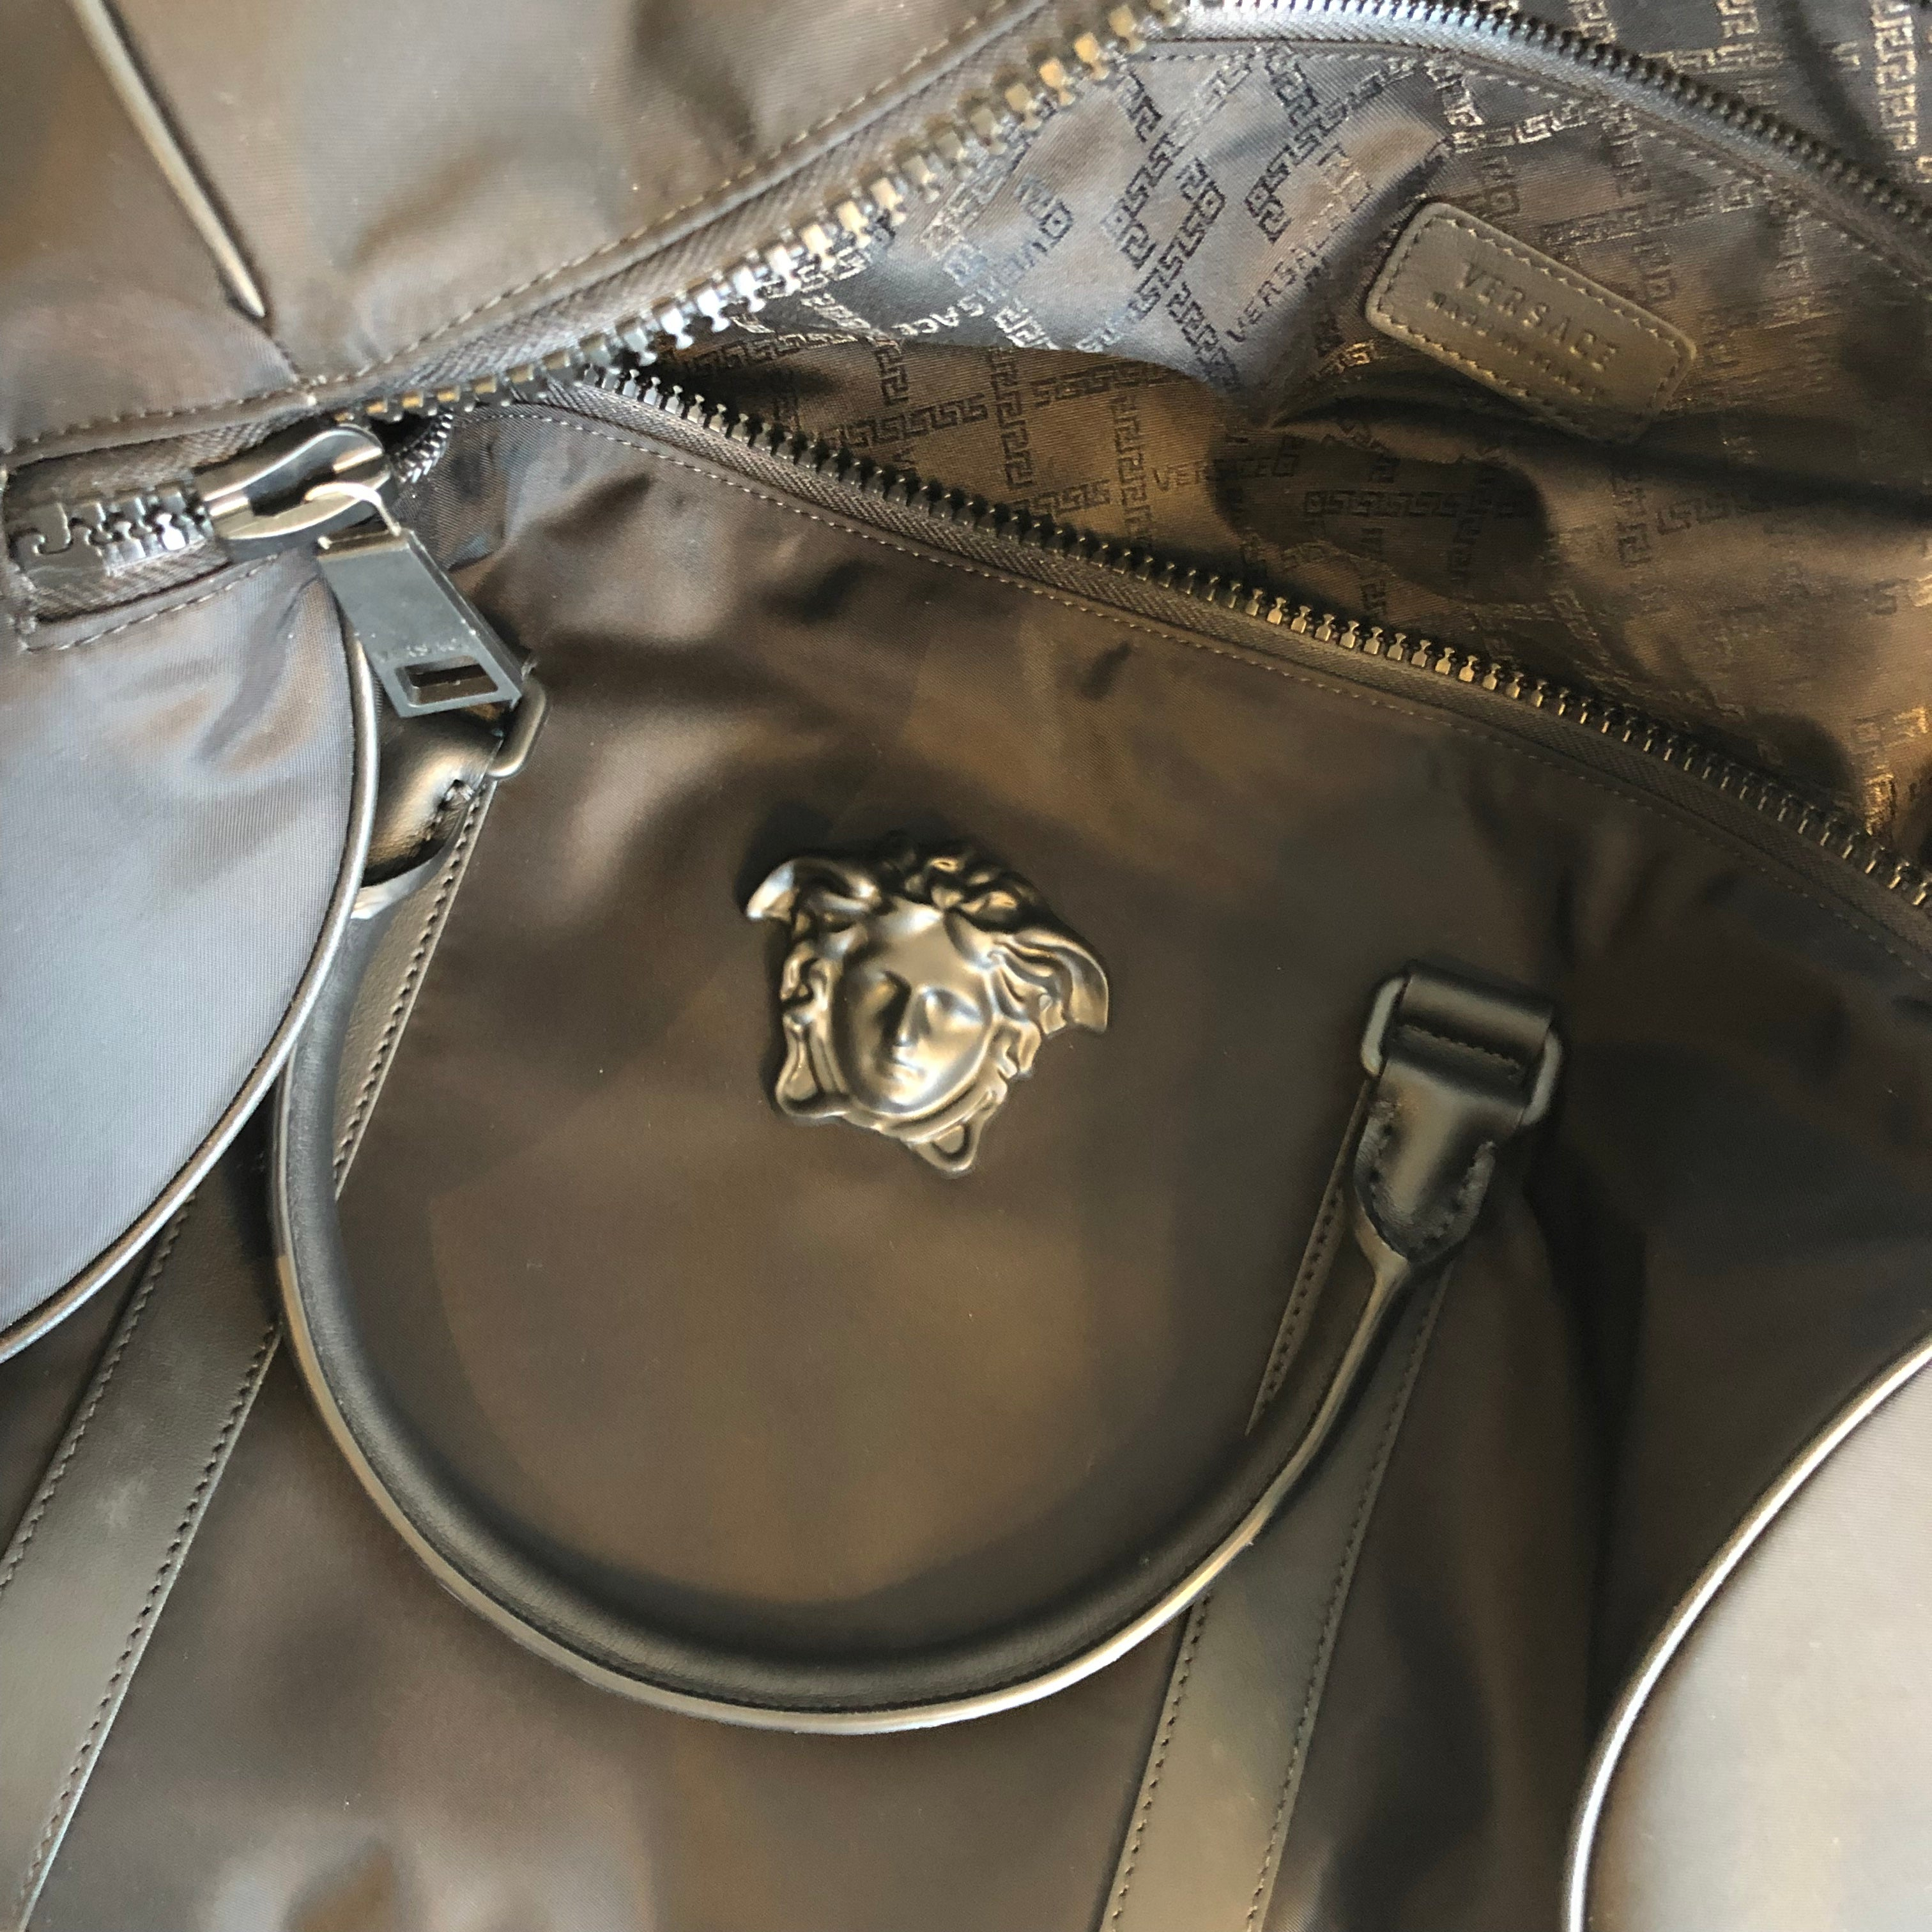 Authentic VERSACE Travel Bag